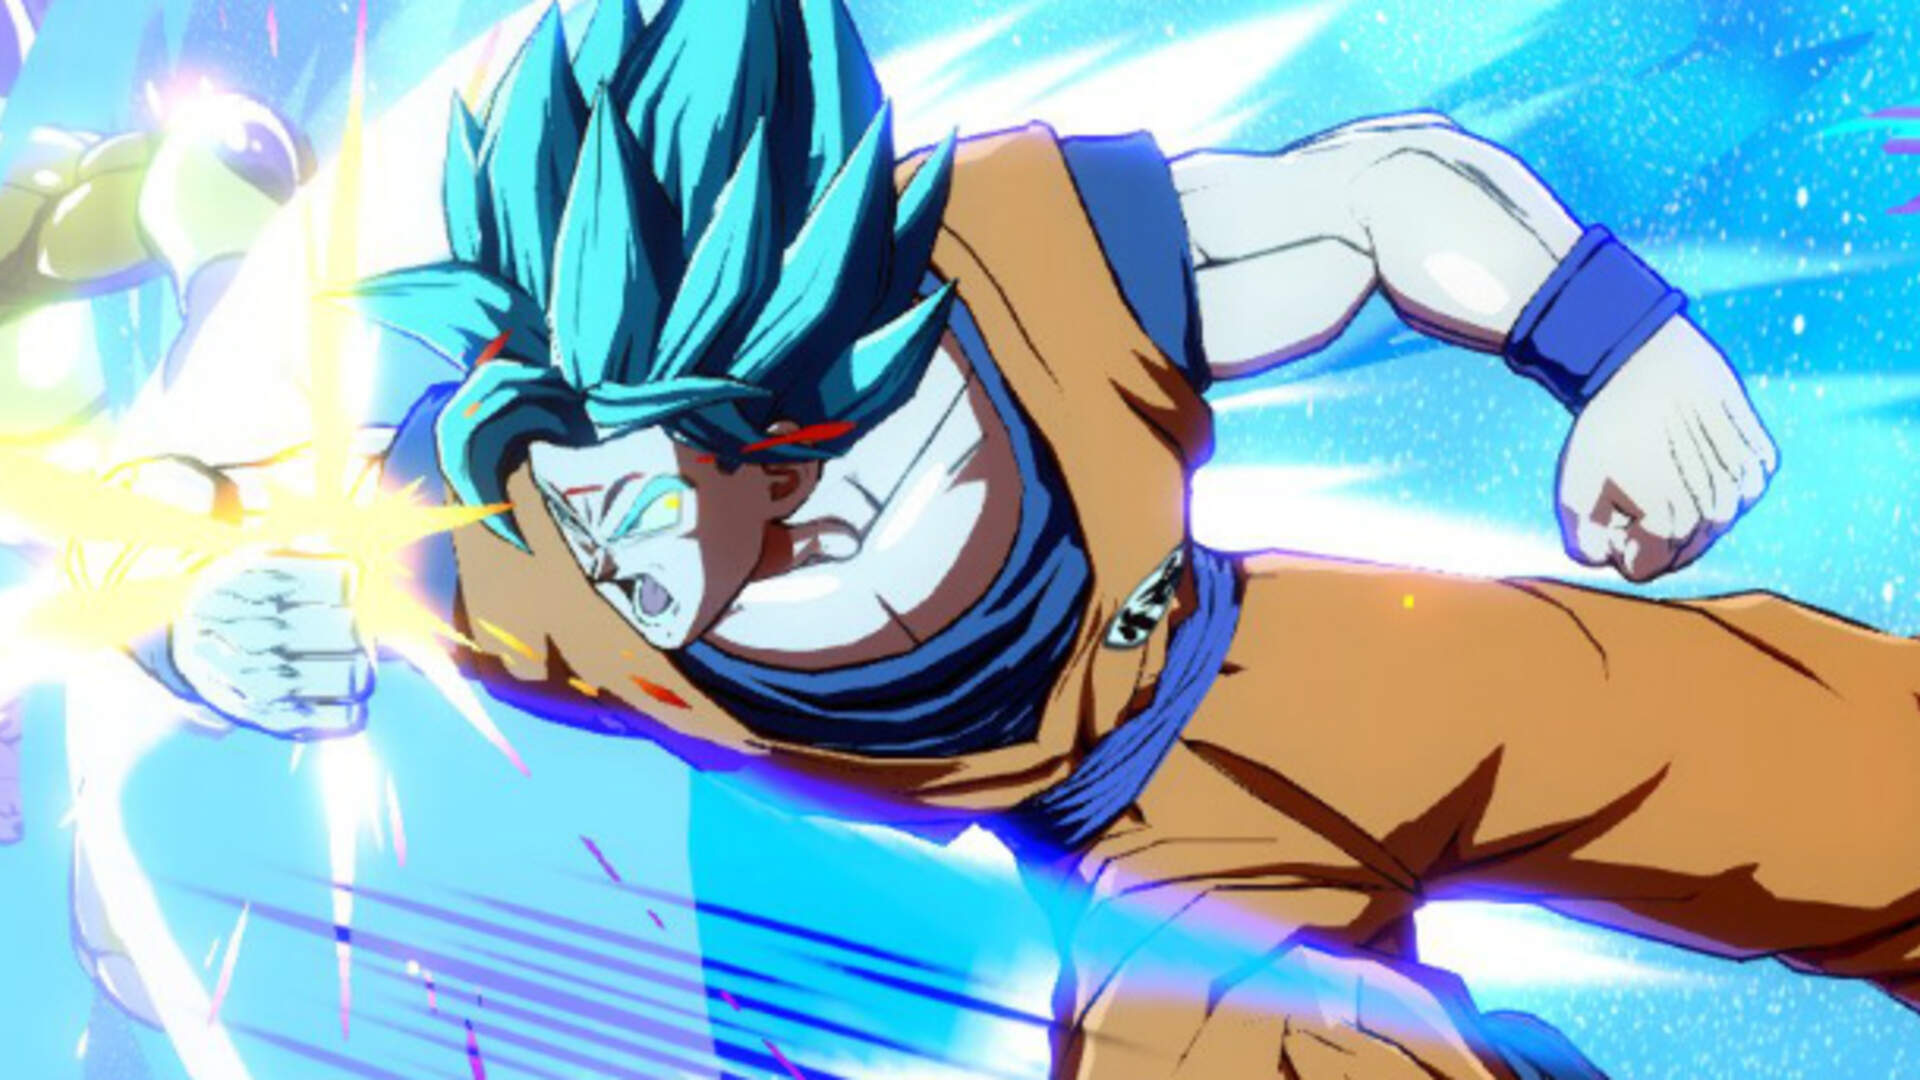 Dragon Ball FighterZ Gets a Story Tease With The All-New Android 21